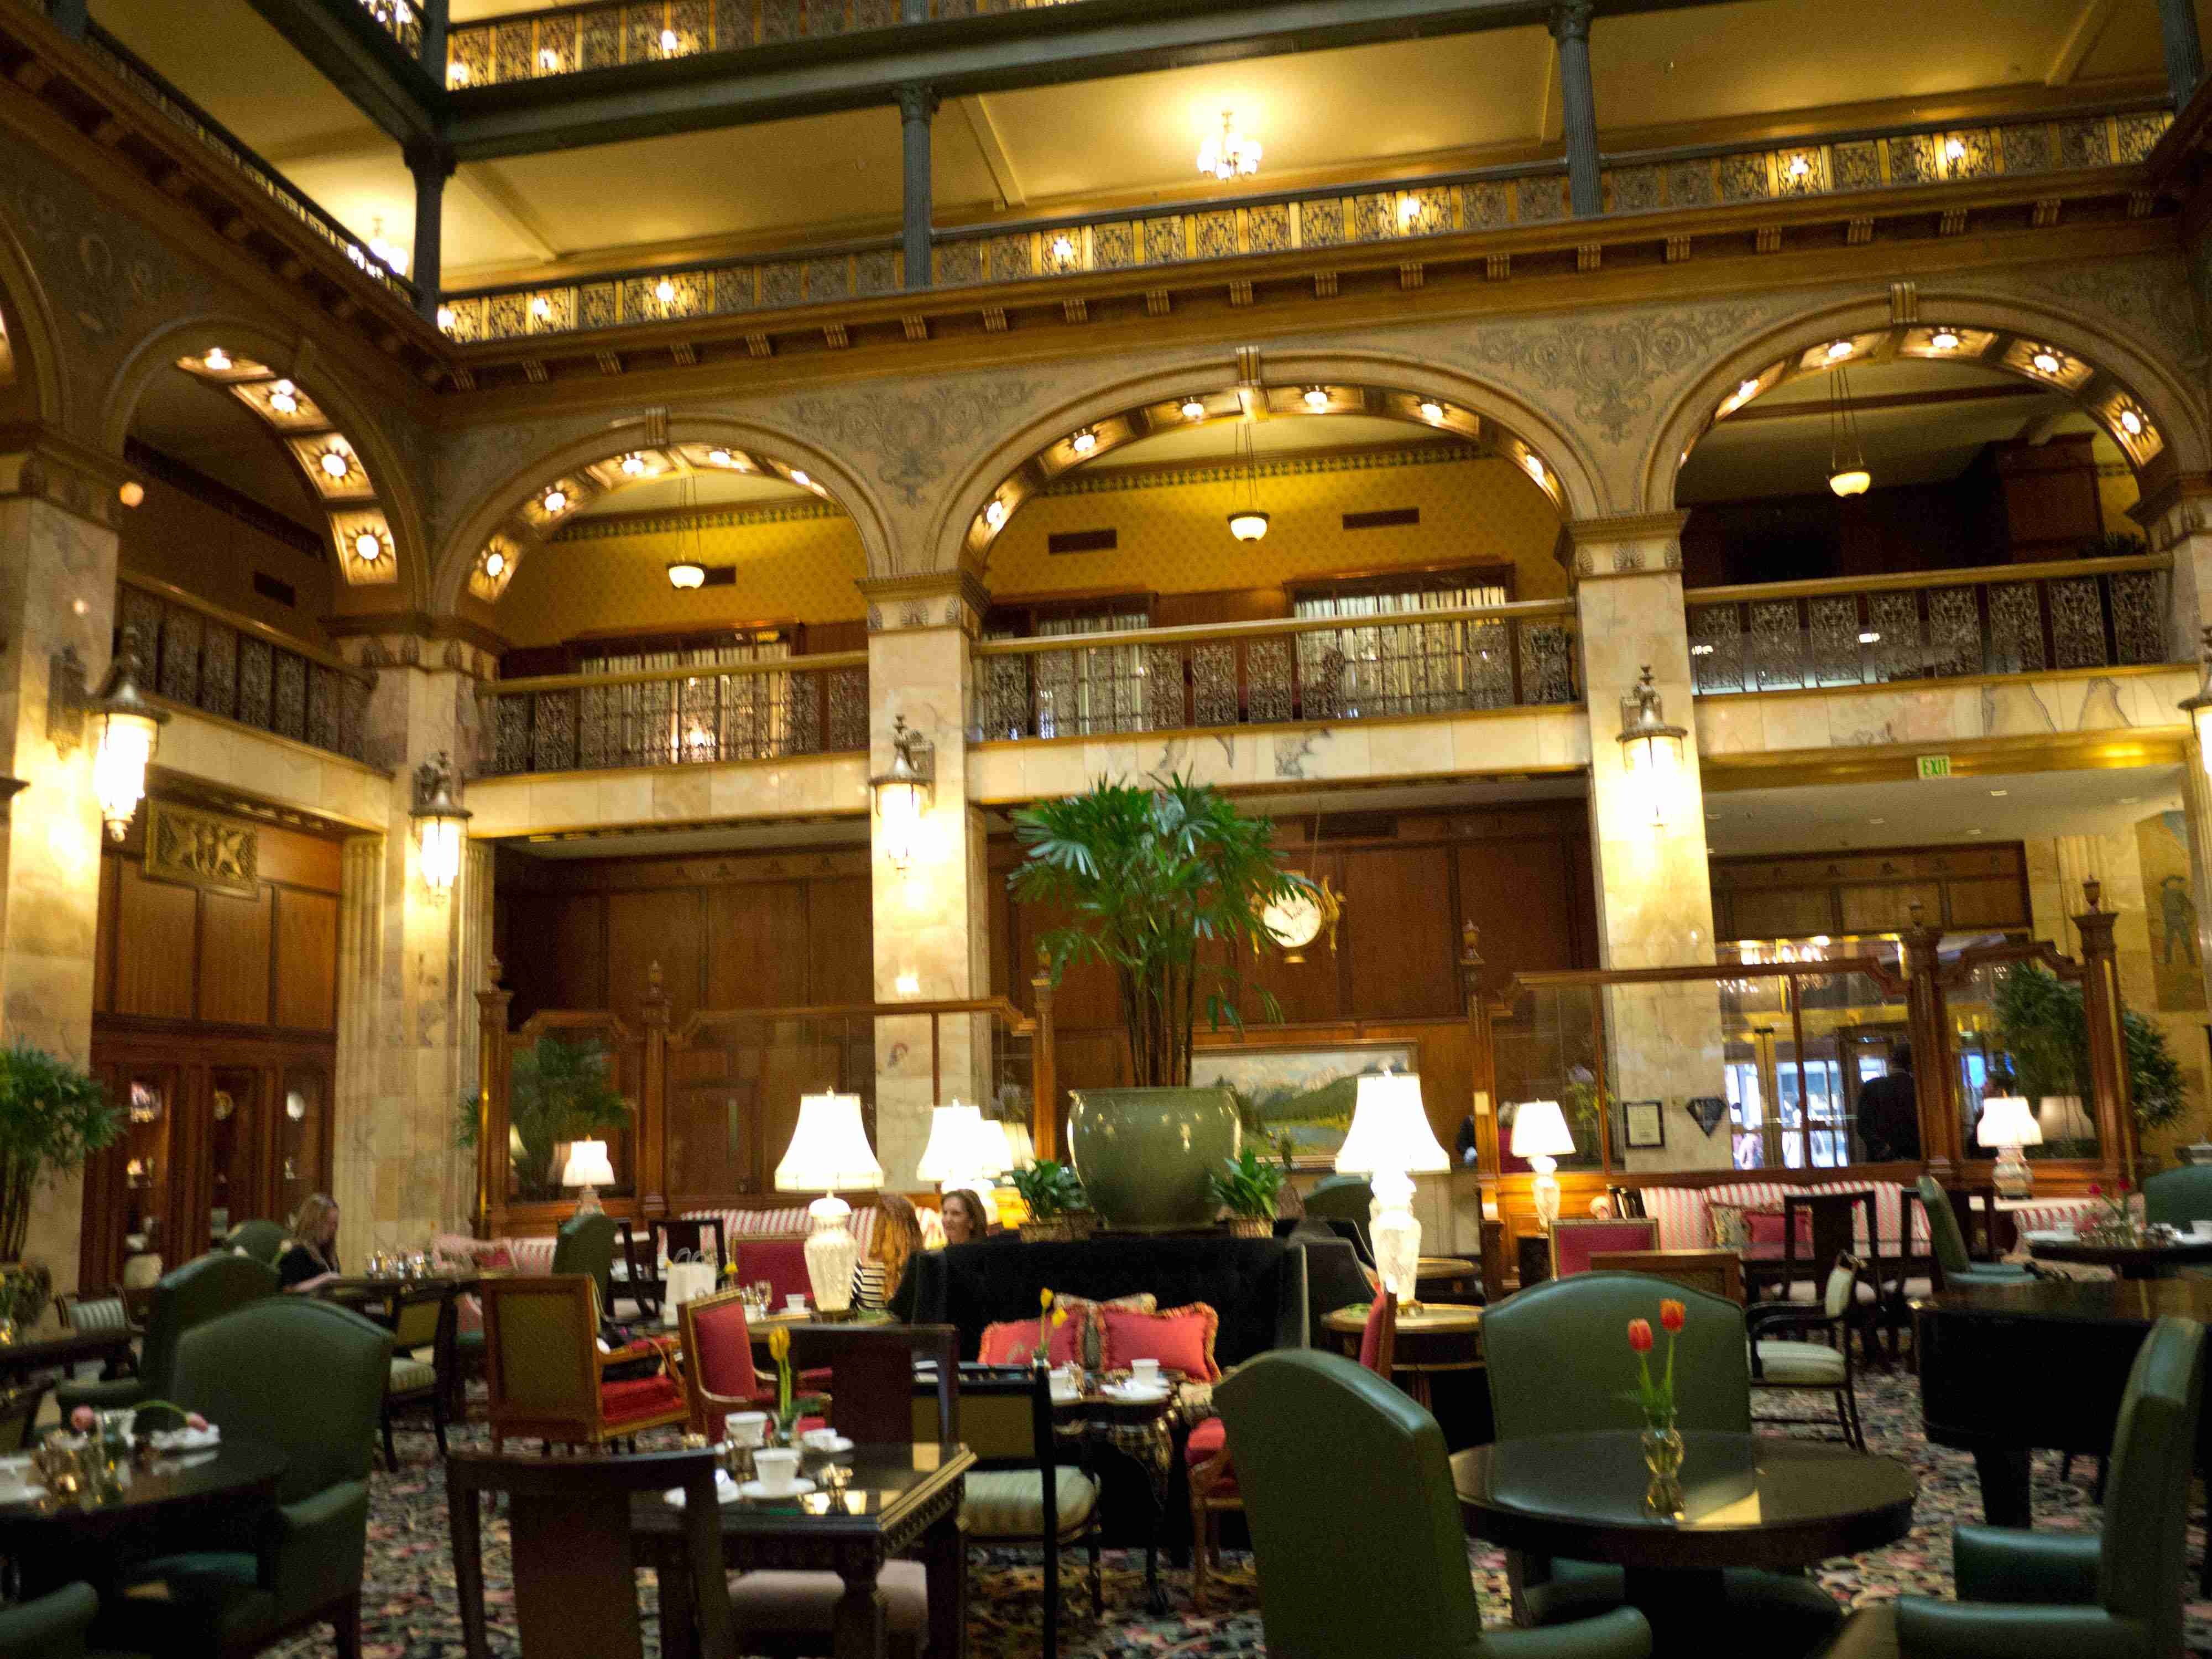 The Brown Palace Hotel and Spa in Denver